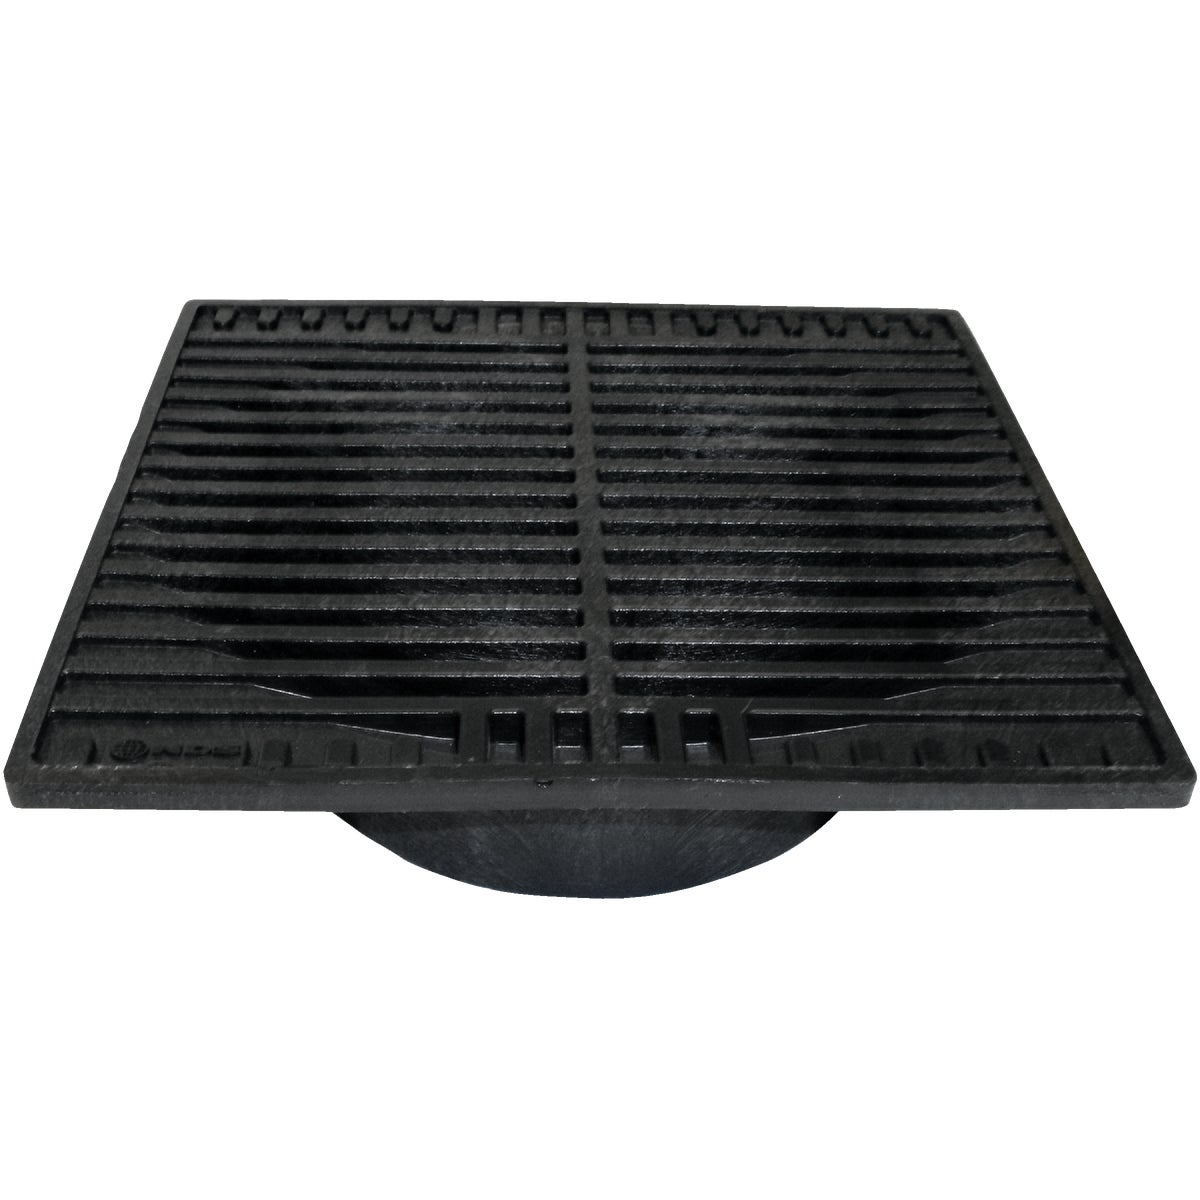 "9"" BLACK SQUARE GRATE - 970 by National Diversified"